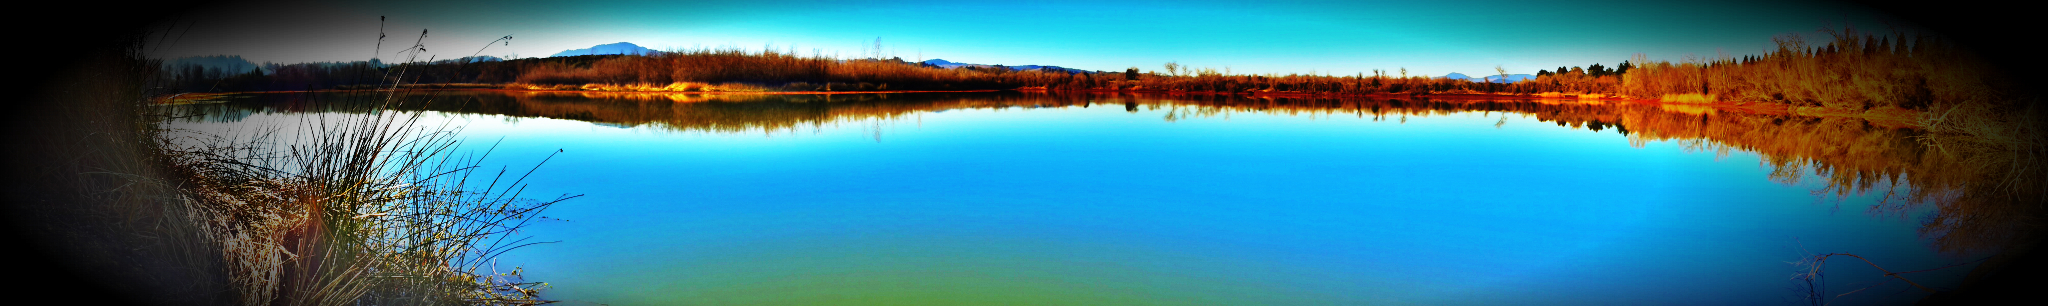 Panorama of a Sonoma County lake by Firefighter-Miller